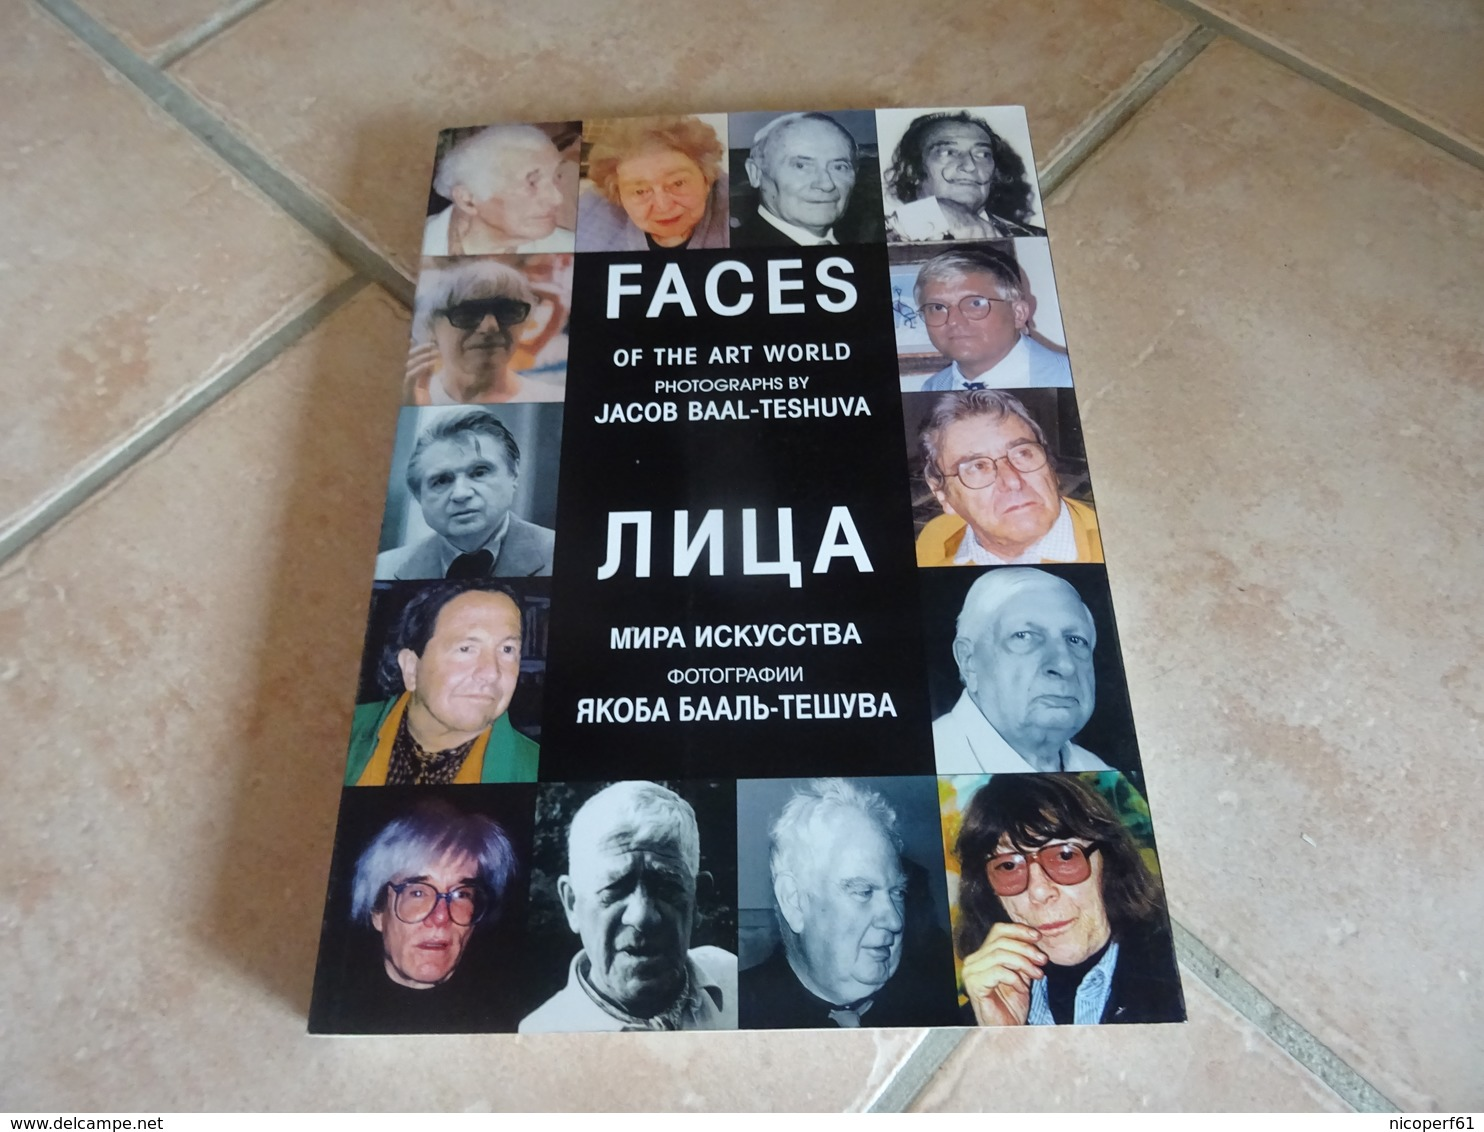 Faces Of The Art World - Photographs By Jacob Baal-Teshuva - Photographie